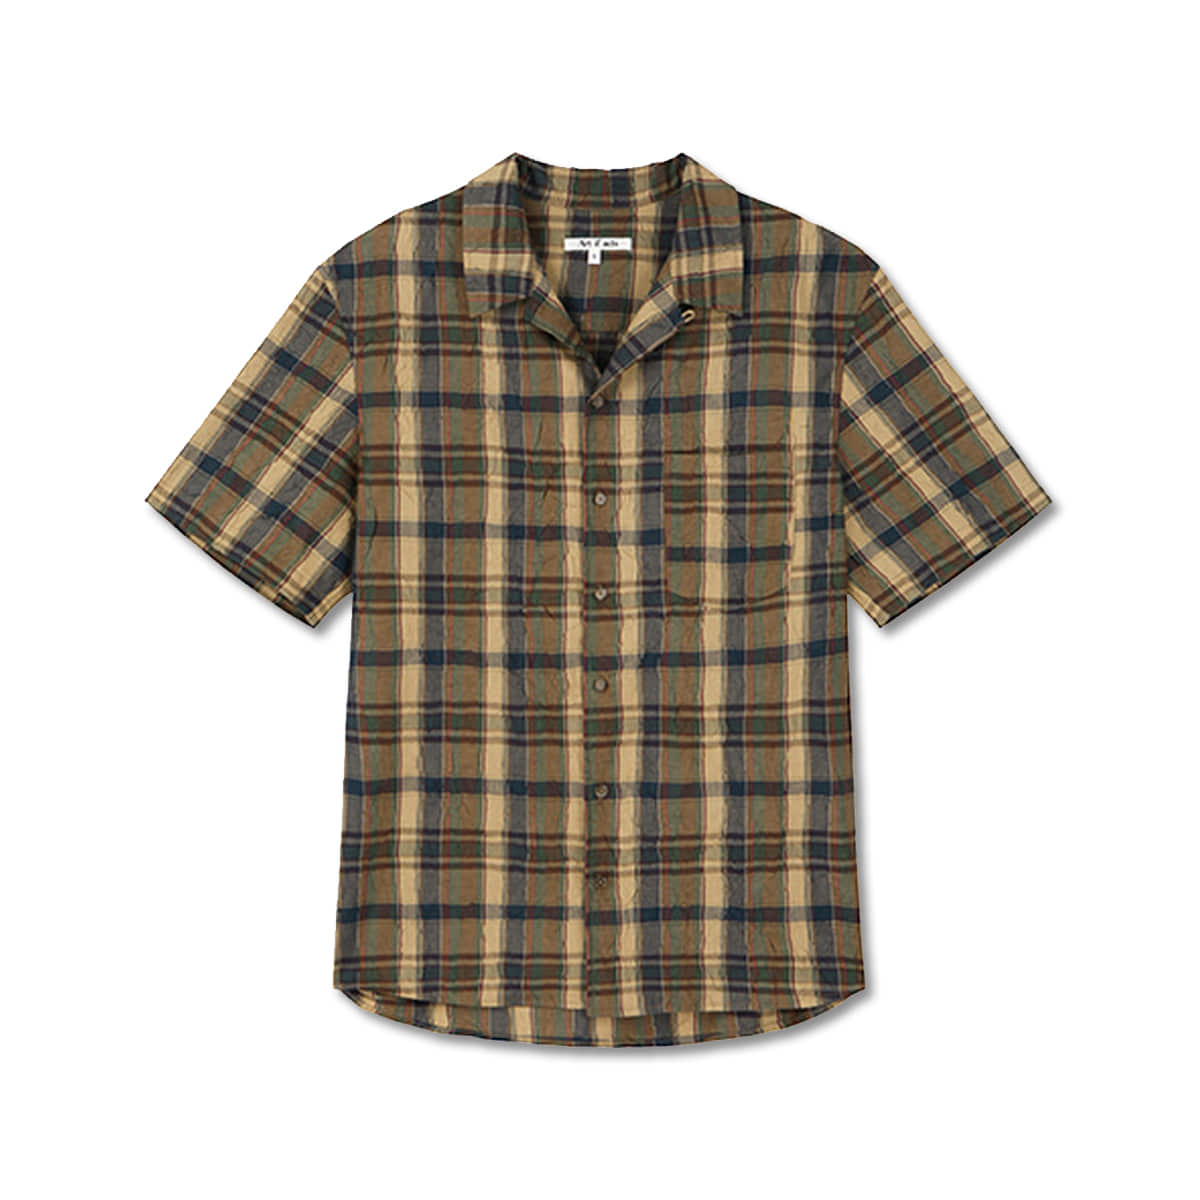 [ART IF ACTS] CLIP PLEATS HALF SHIRTS 'BROWN'